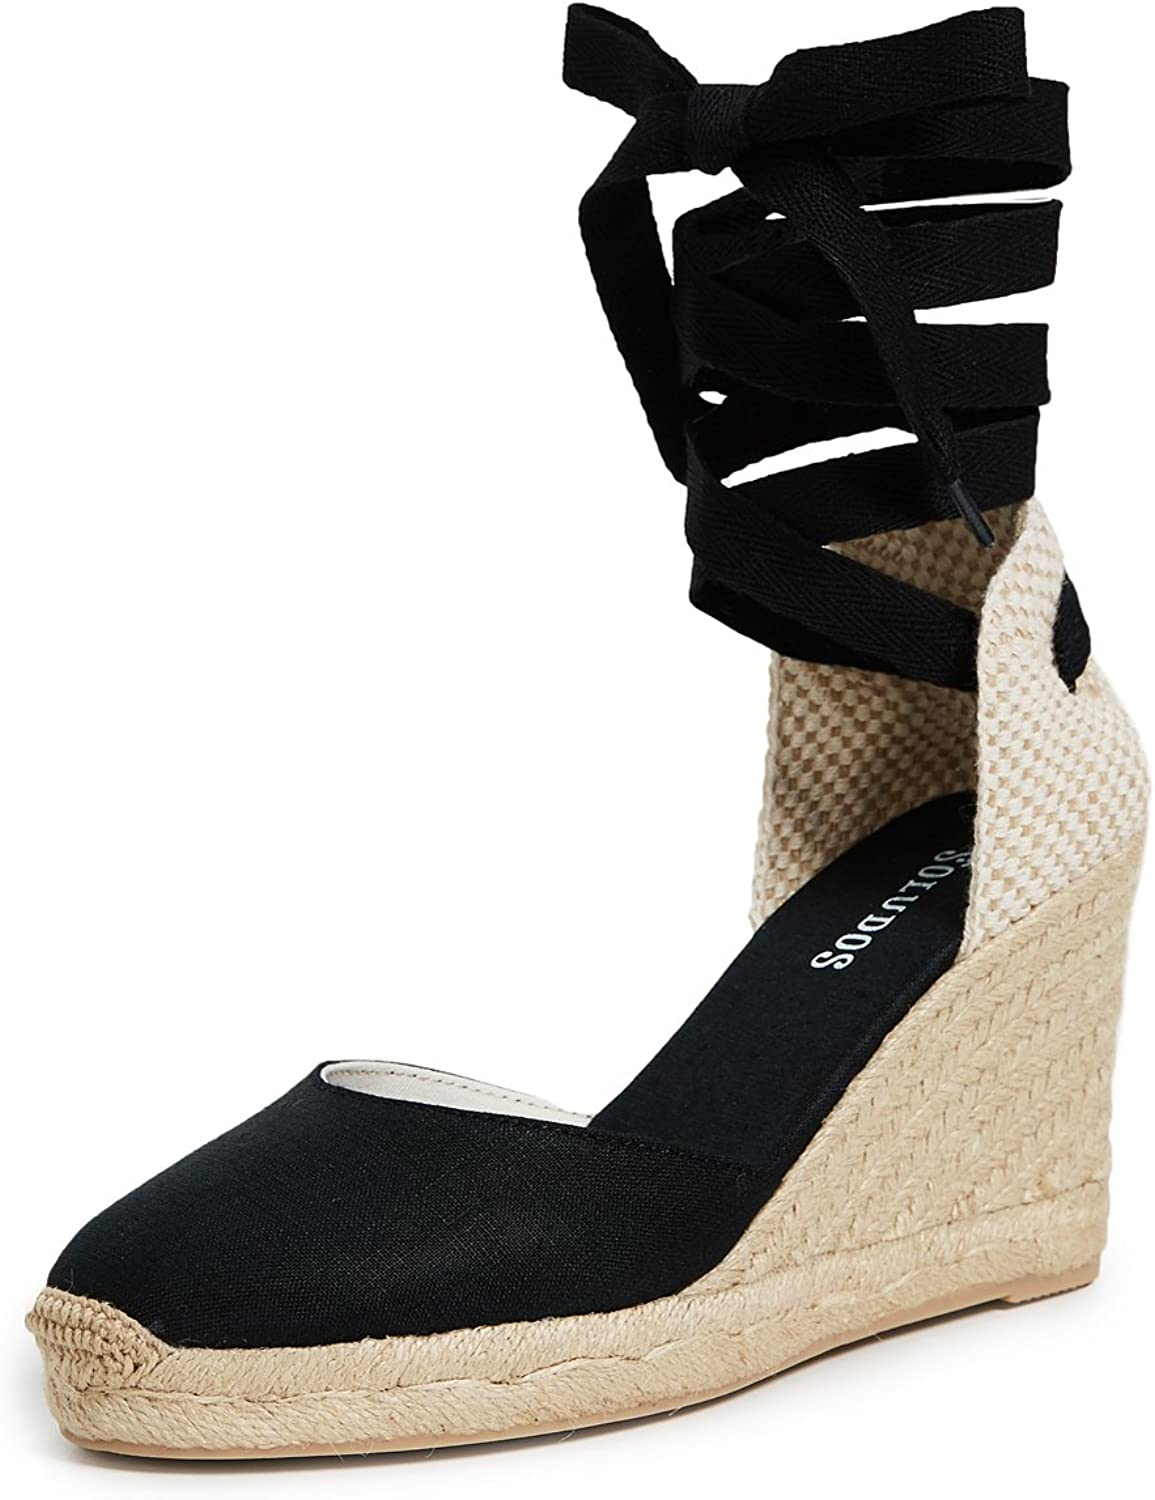 Soludos Women's Tall Wedge Espadrilles